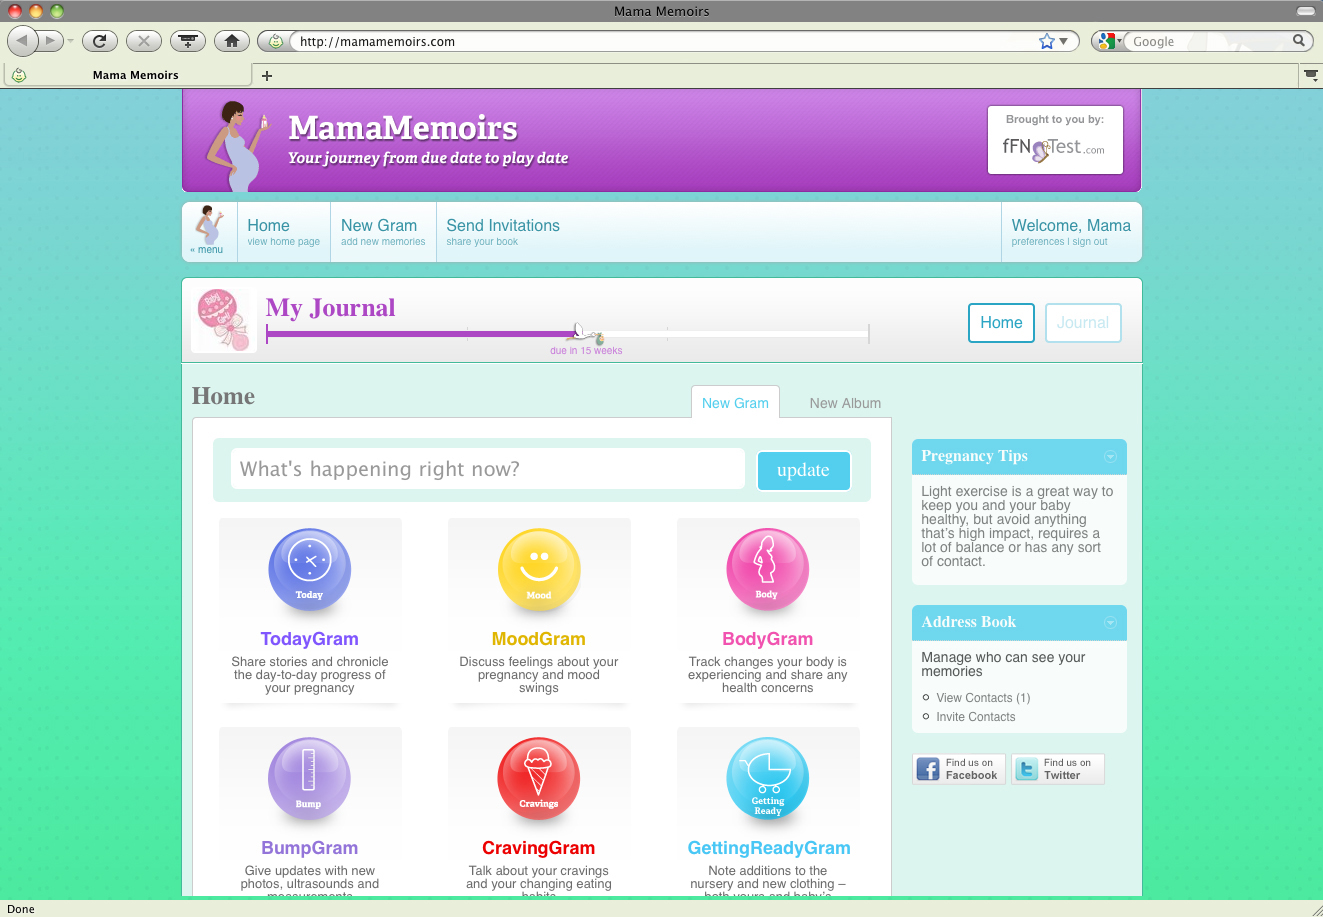 the MamaMemoirs homepage,